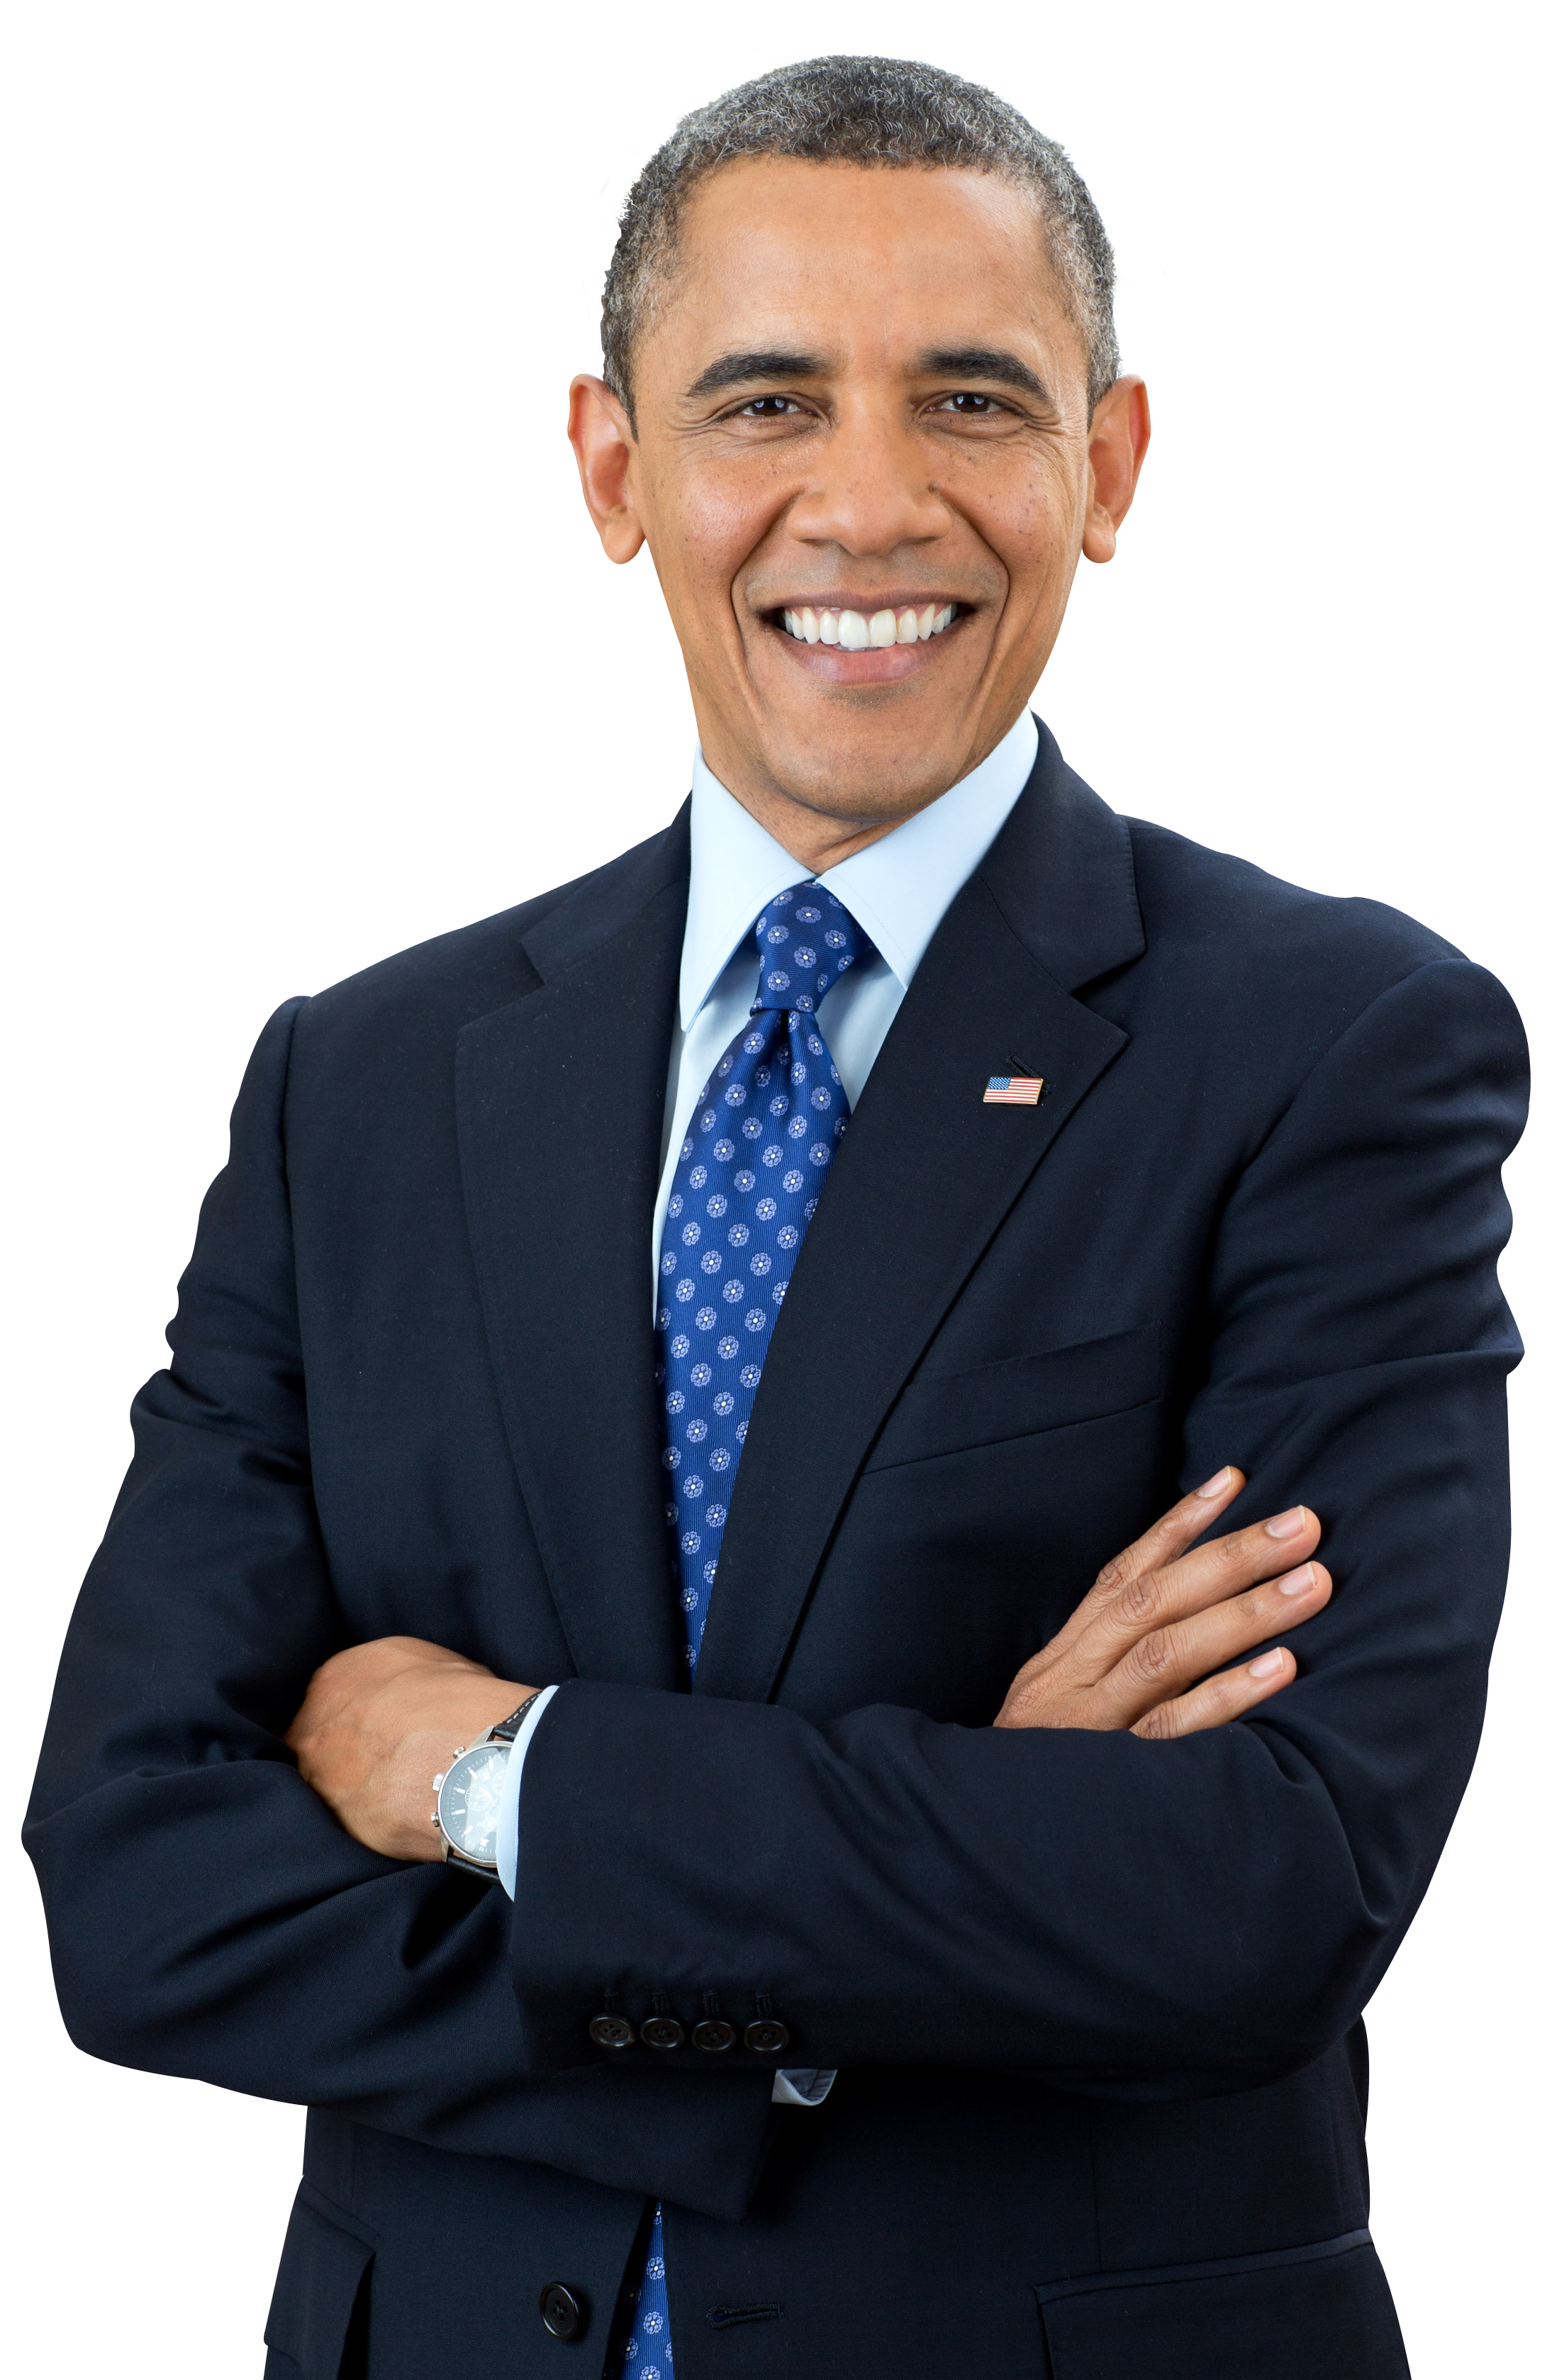 Barack Obama PNG images free download.